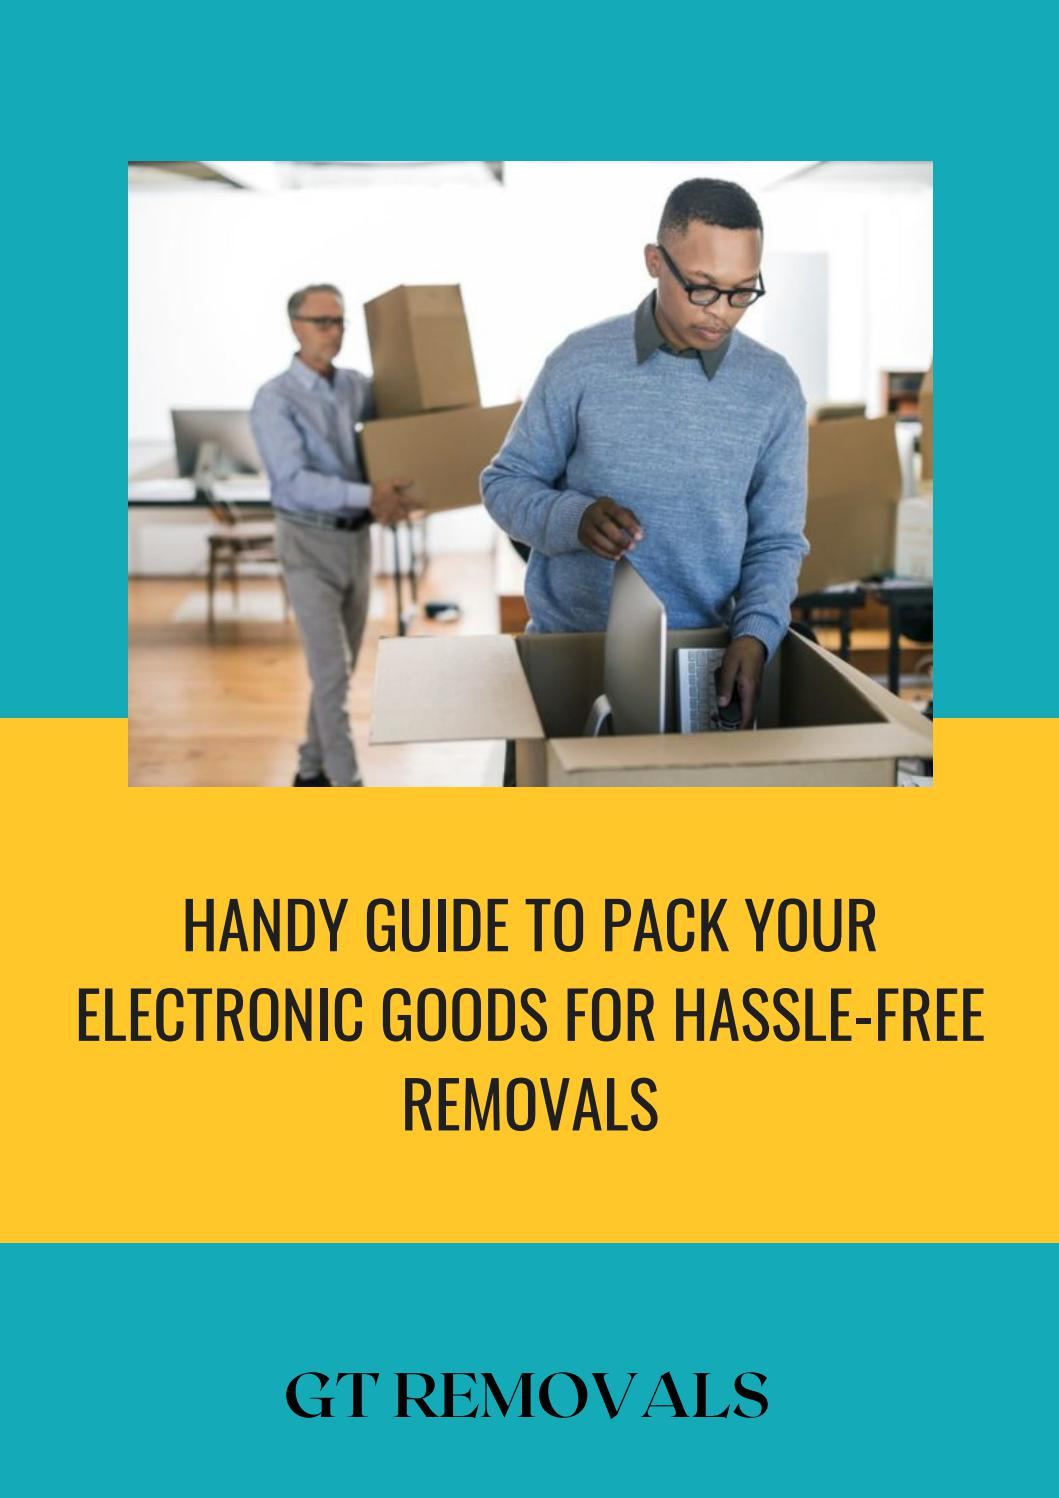 Handy Guide to Pack Your Electronic Goods for Hassle-Free Removals